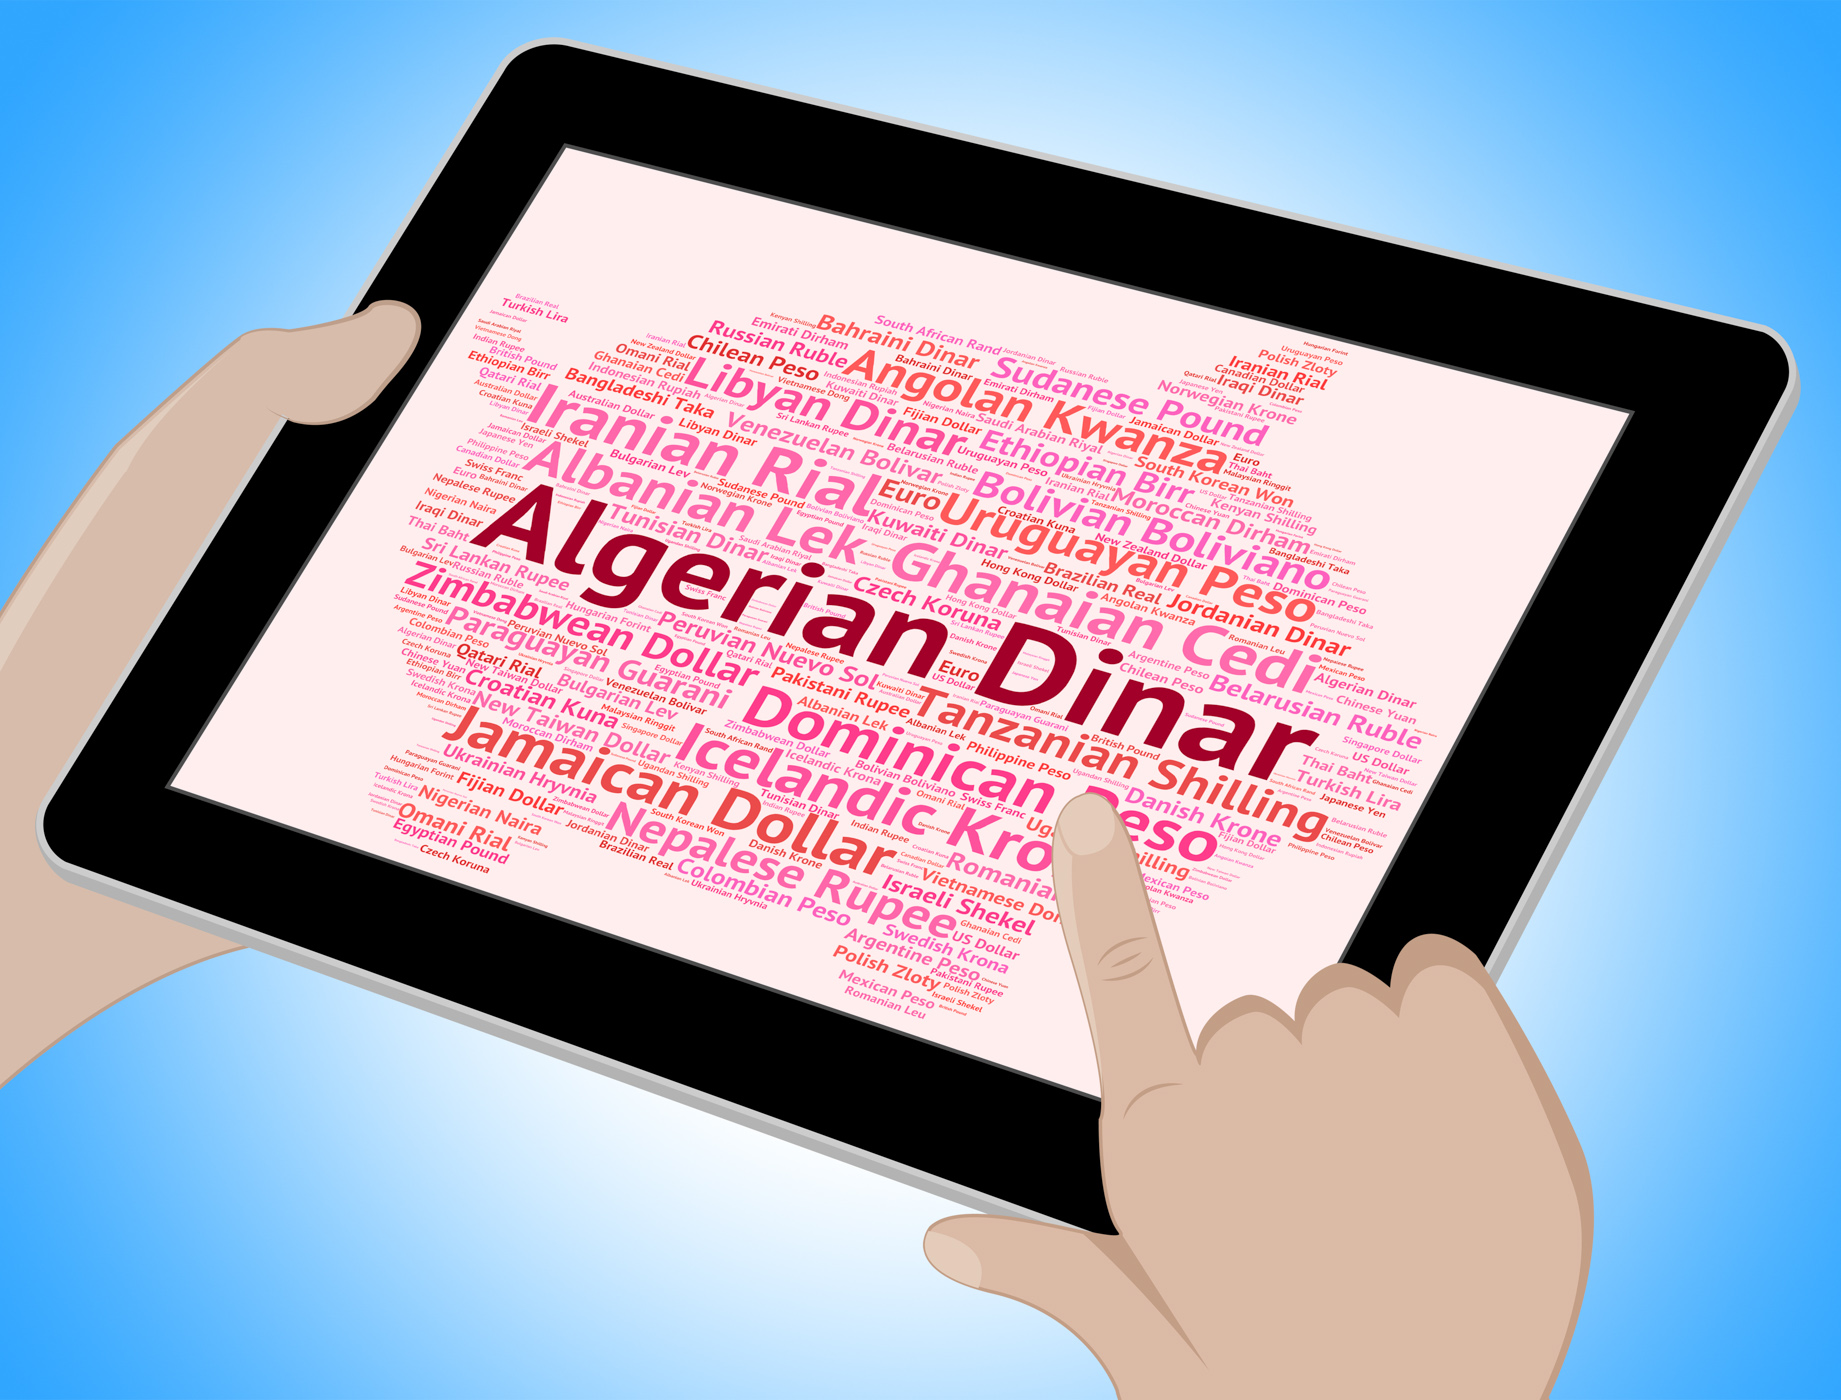 Algerian dinar represents worldwide trading and broker photo